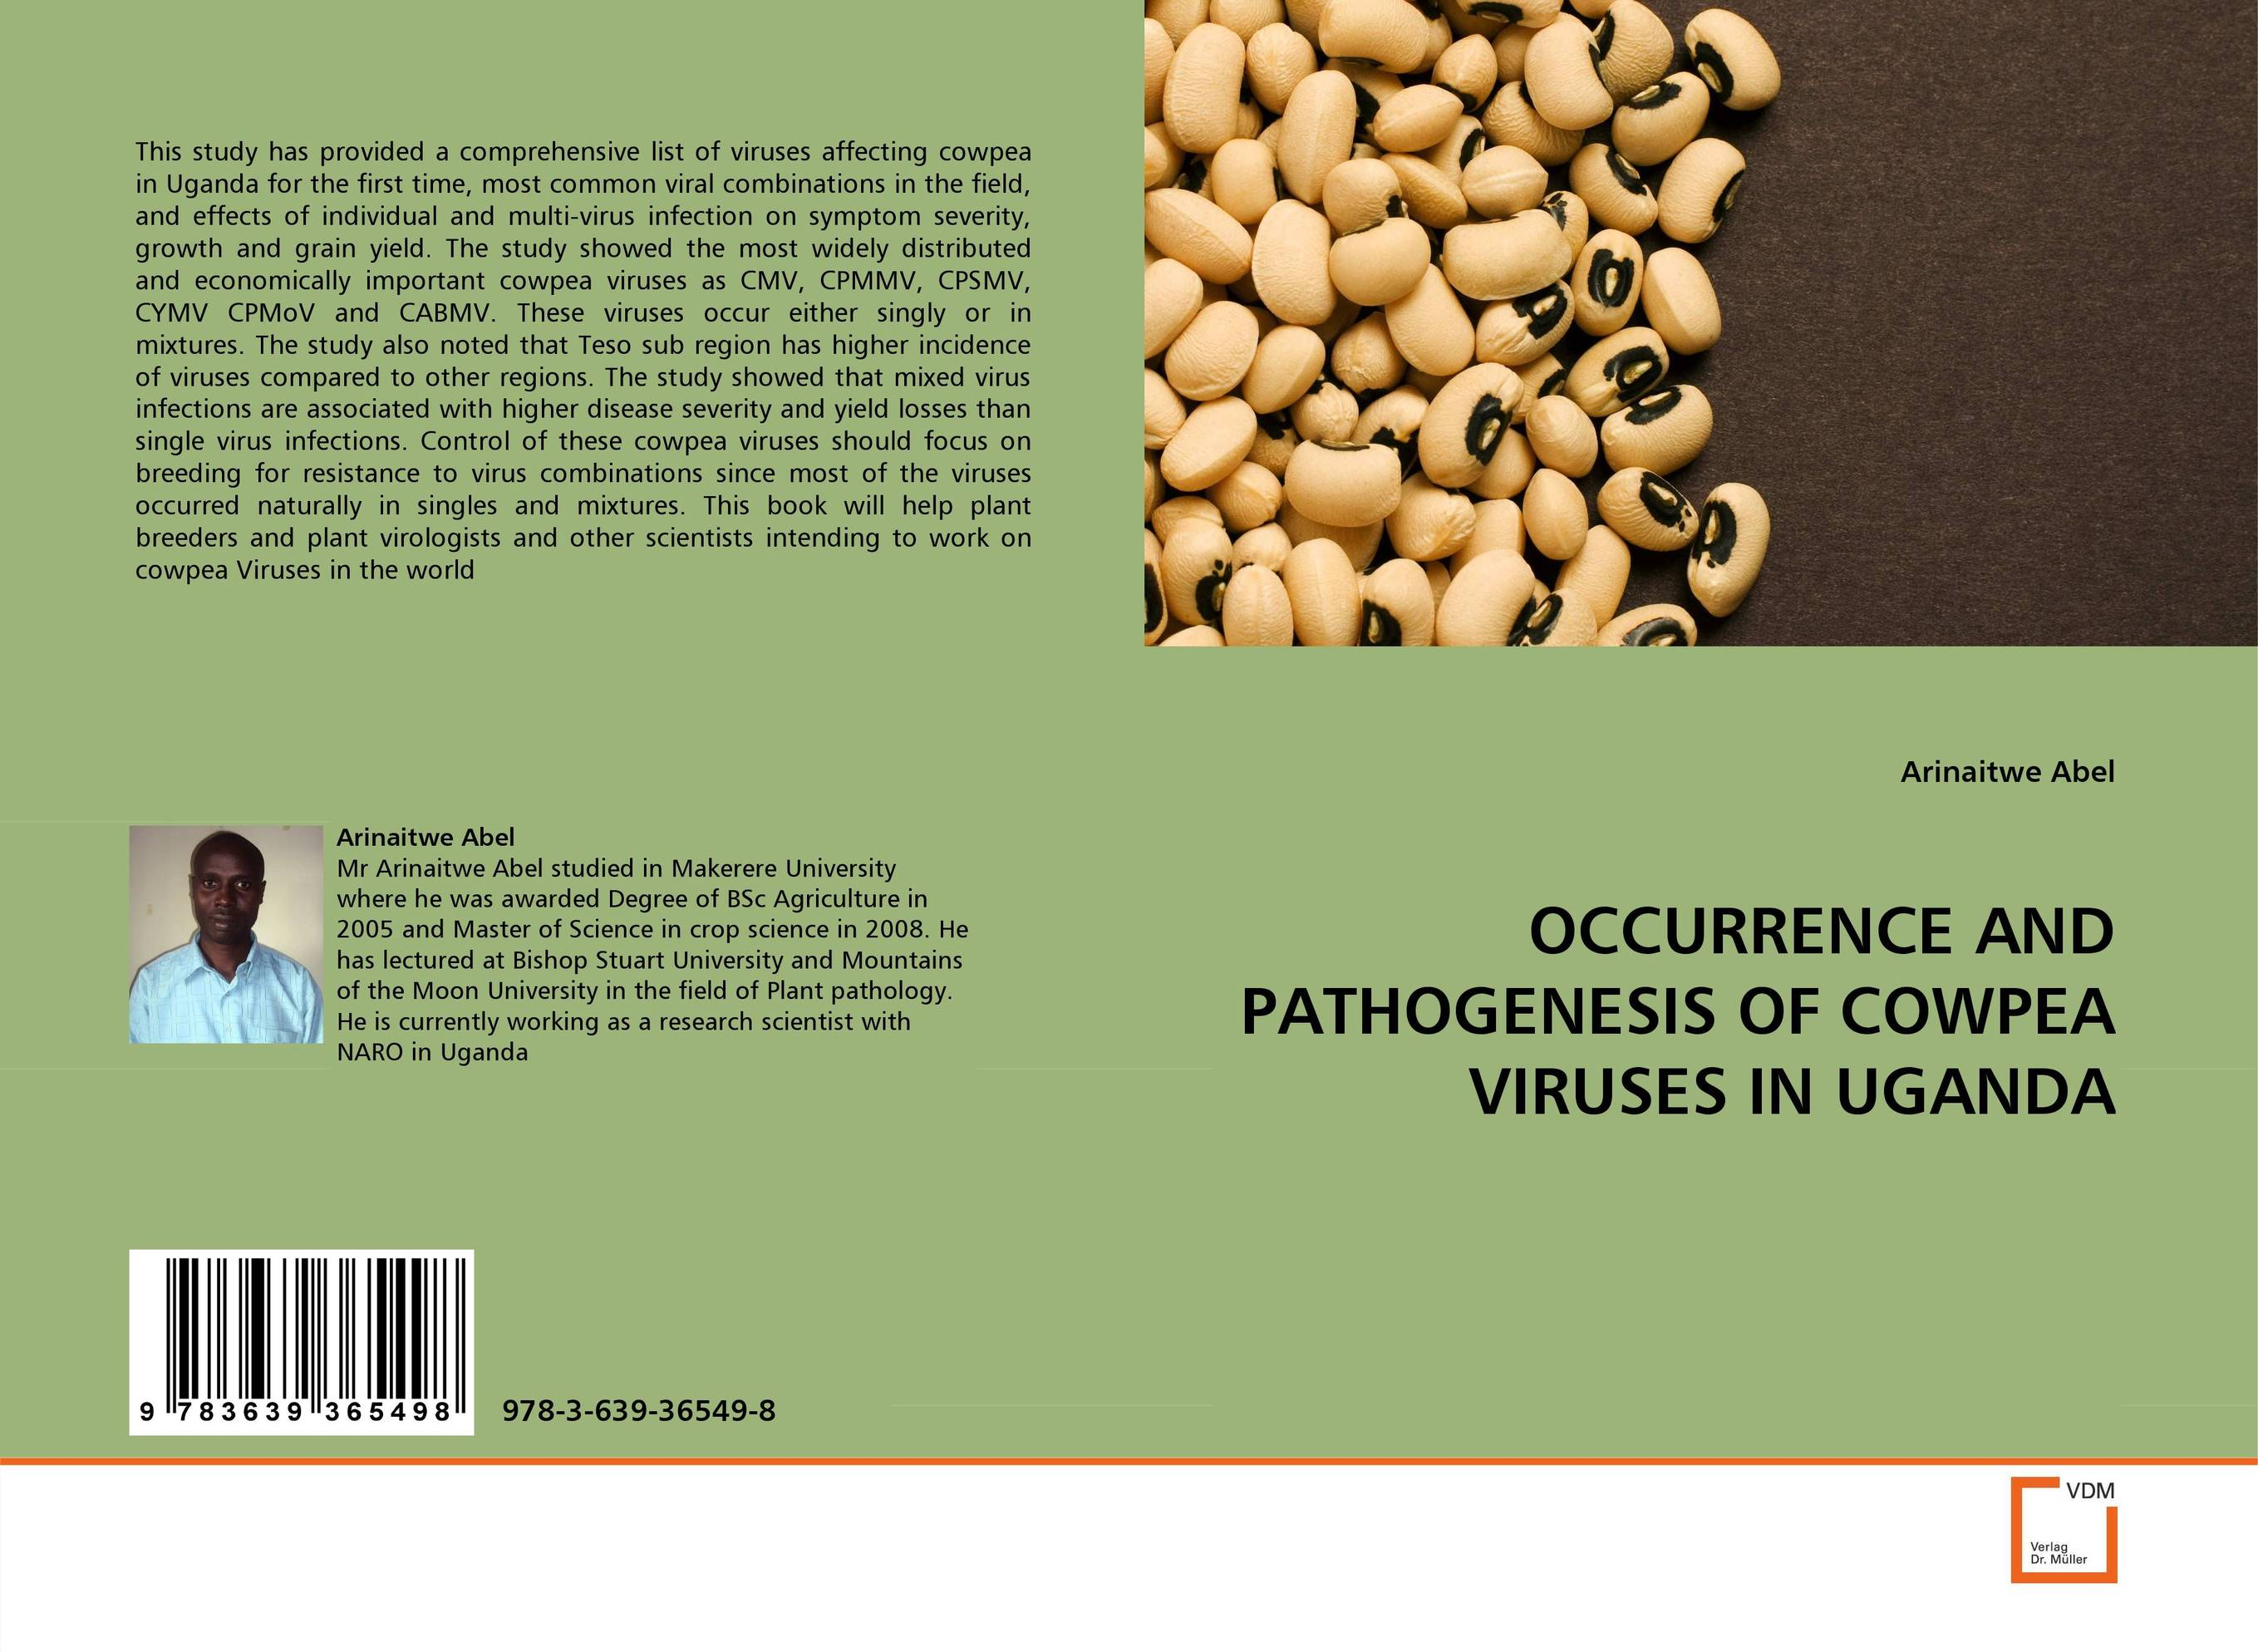 OCCURRENCE AND PATHOGENESIS OF COWPEA VIRUSES IN UGANDA